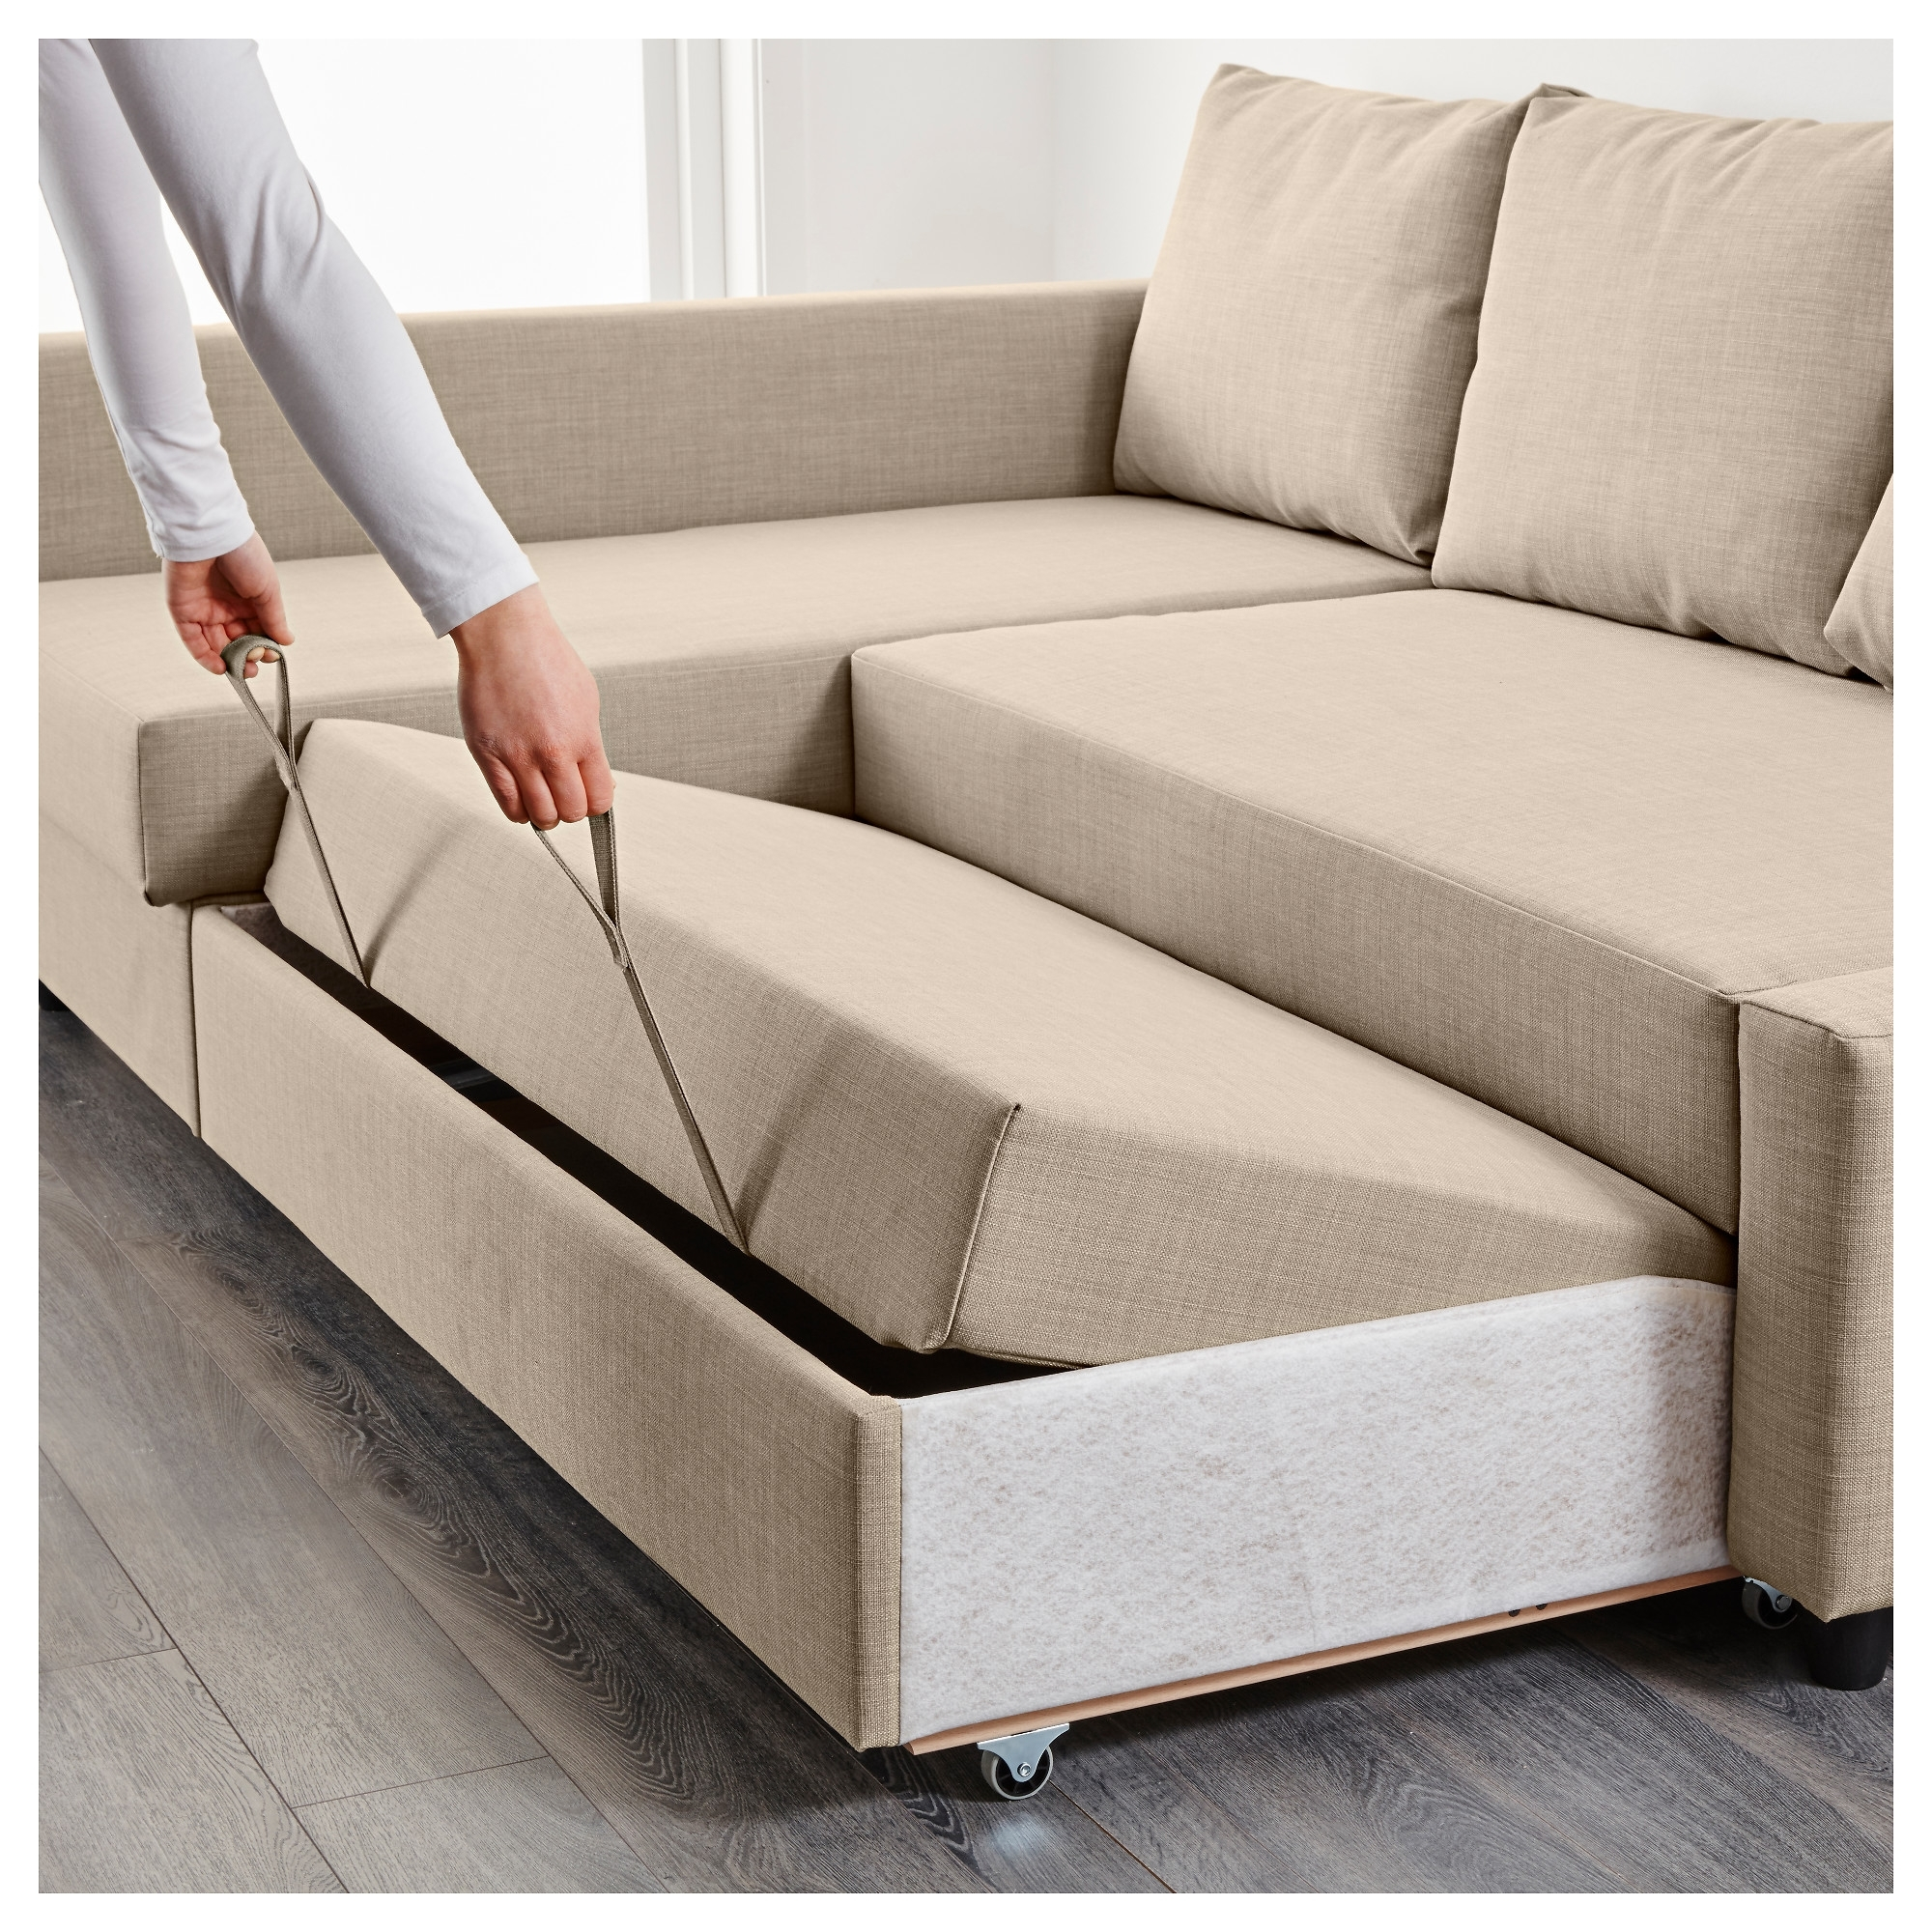 Friheten Corner Sofa Bed With Storage Skiftebo Beige – Ikea In Ikea Corner Sofas With Storage (View 2 of 10)